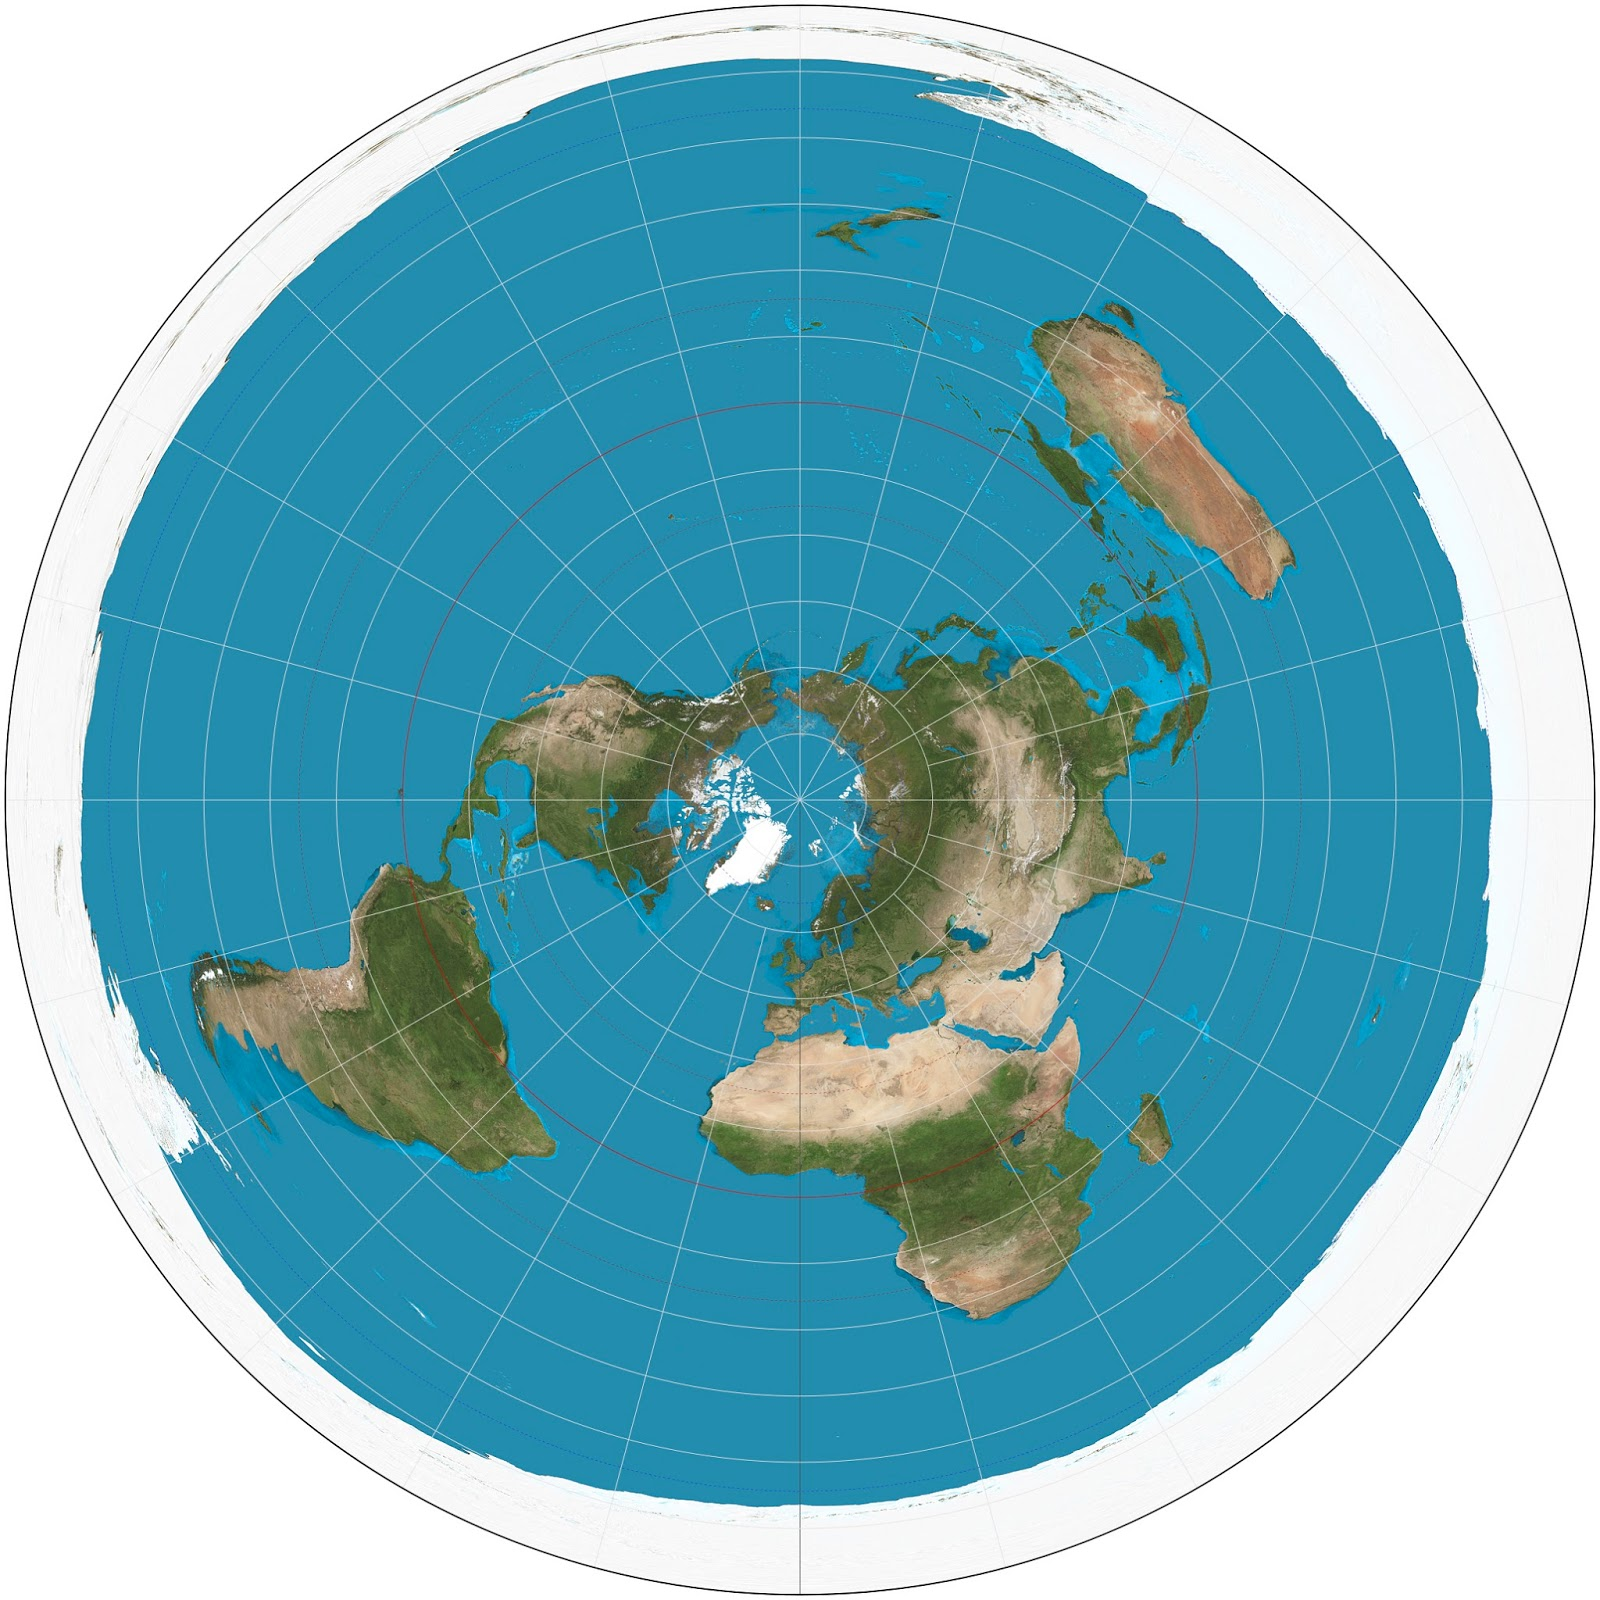 Flat Earth vs Round Earth The Flat Earth Map